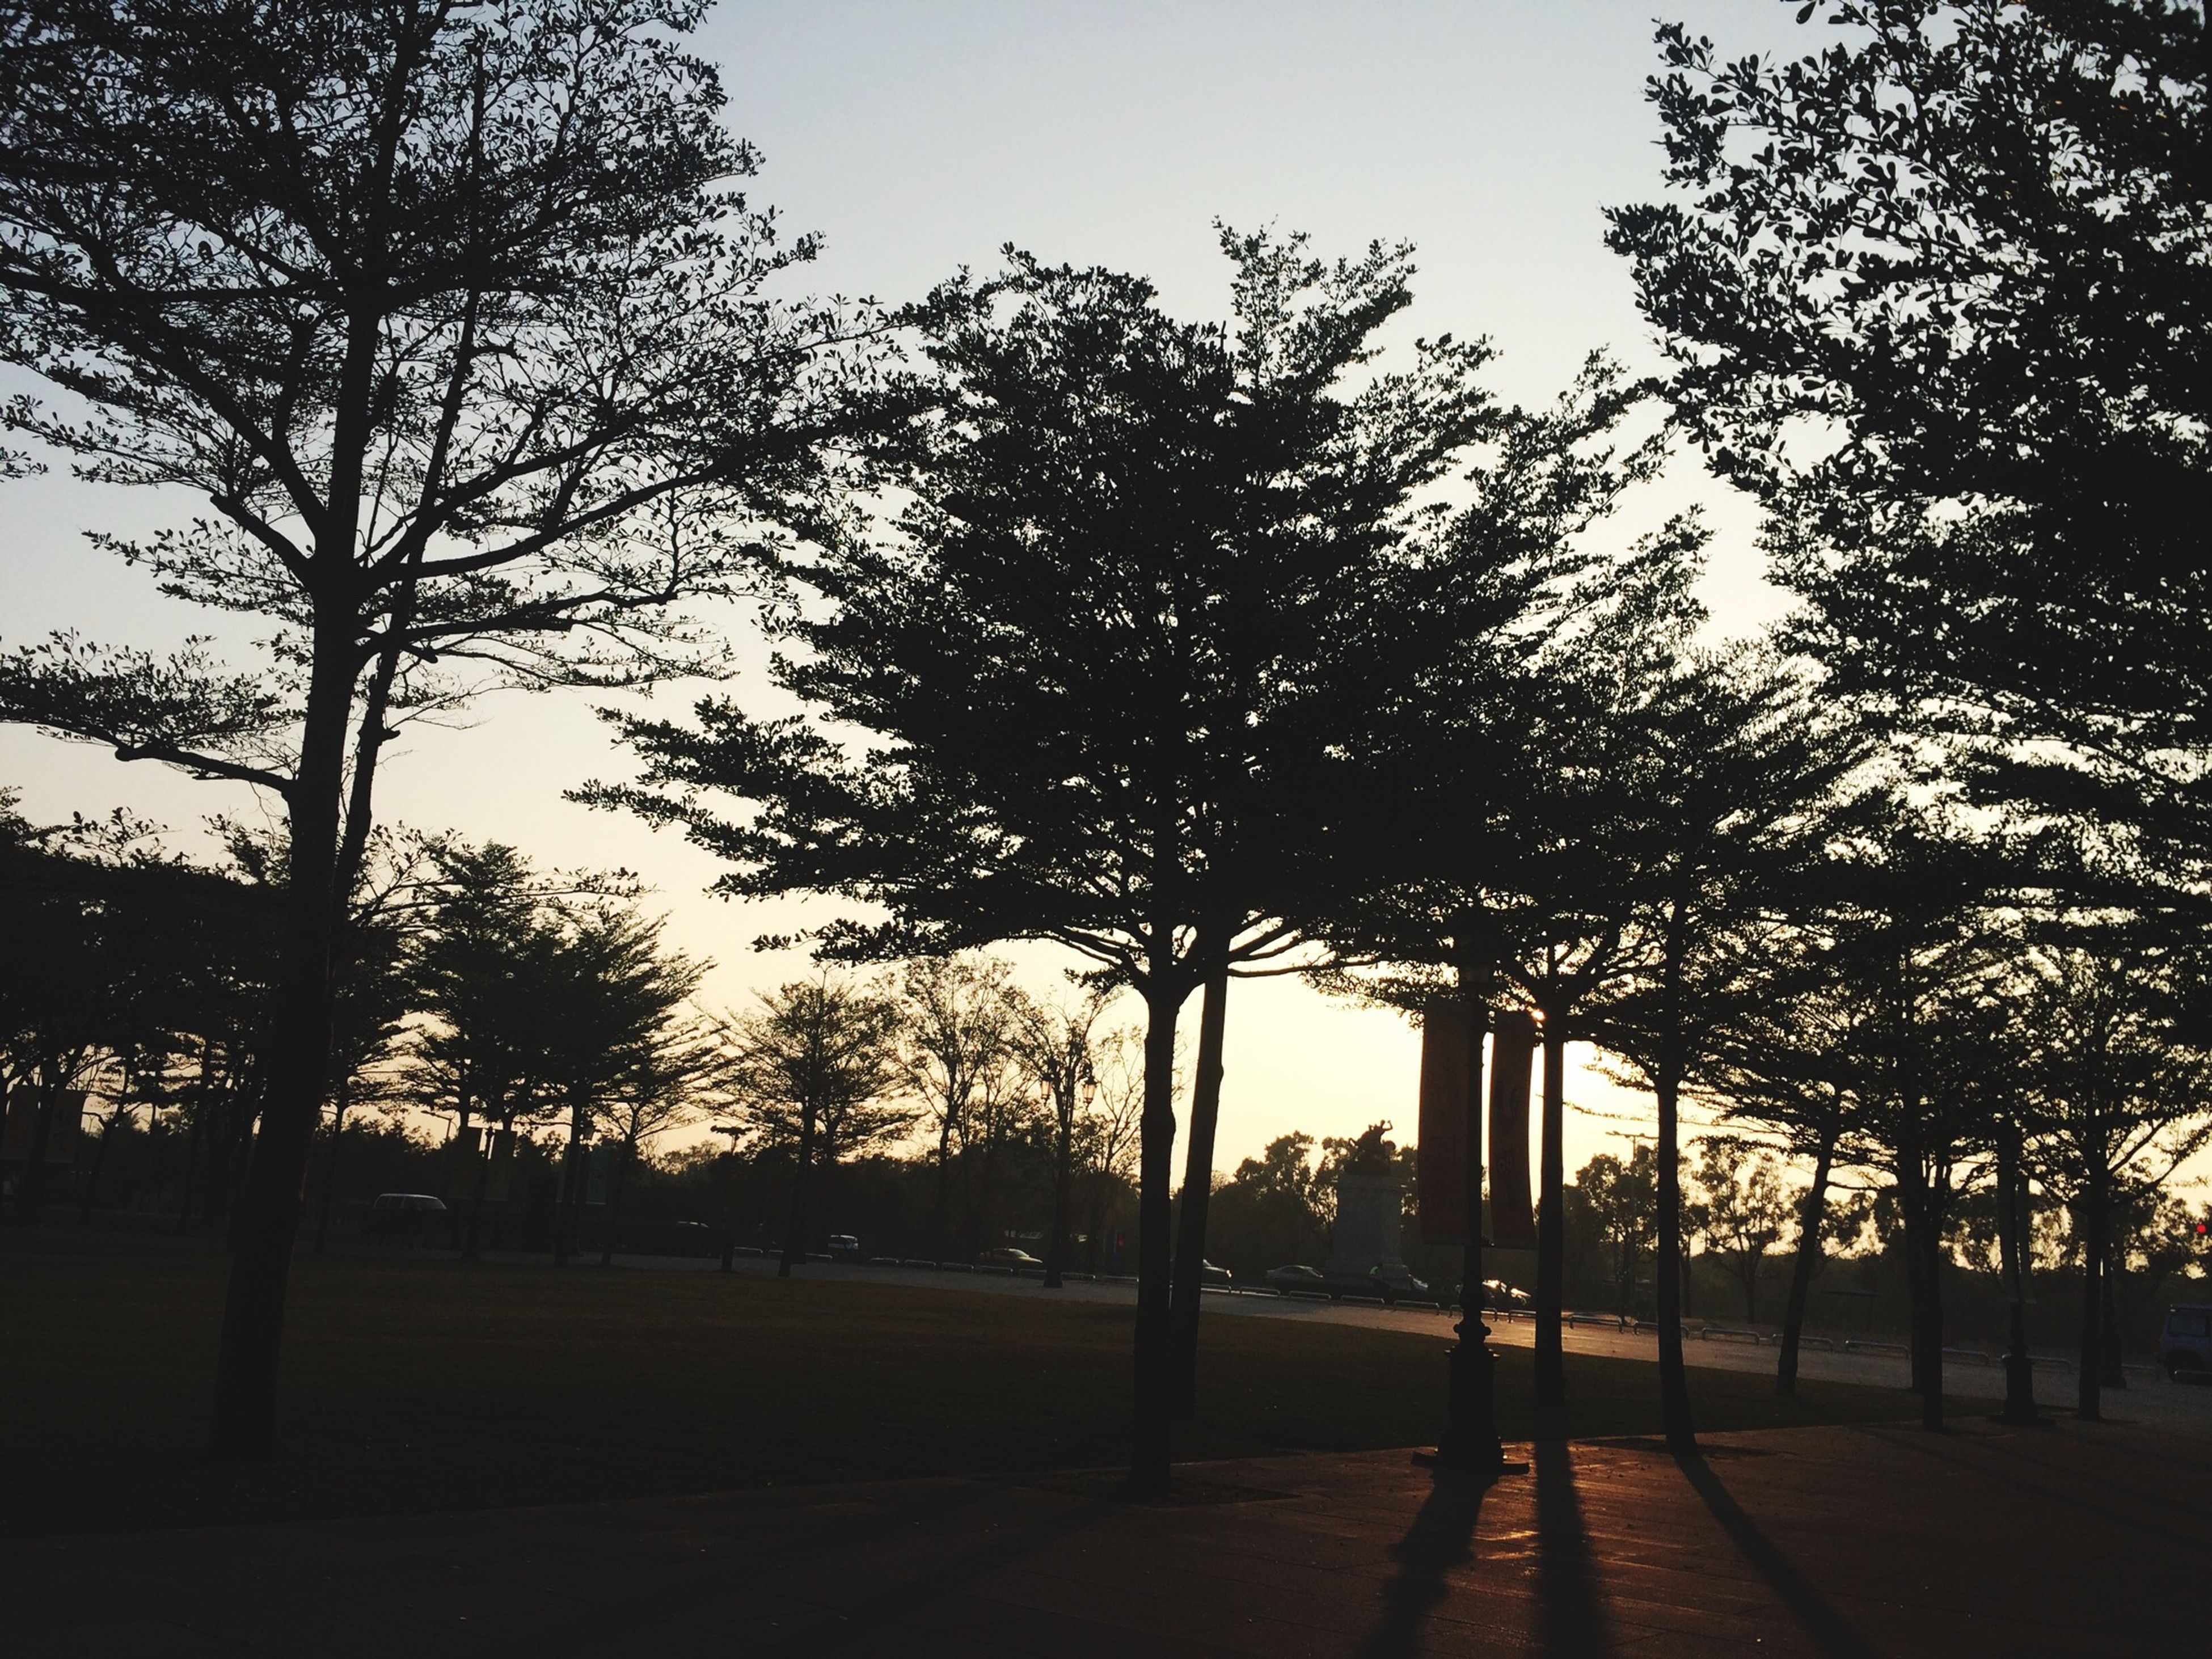 tree, silhouette, sky, park - man made space, tranquility, growth, branch, street light, nature, clear sky, sunlight, sunset, tree trunk, tranquil scene, shadow, outdoors, park, no people, built structure, beauty in nature